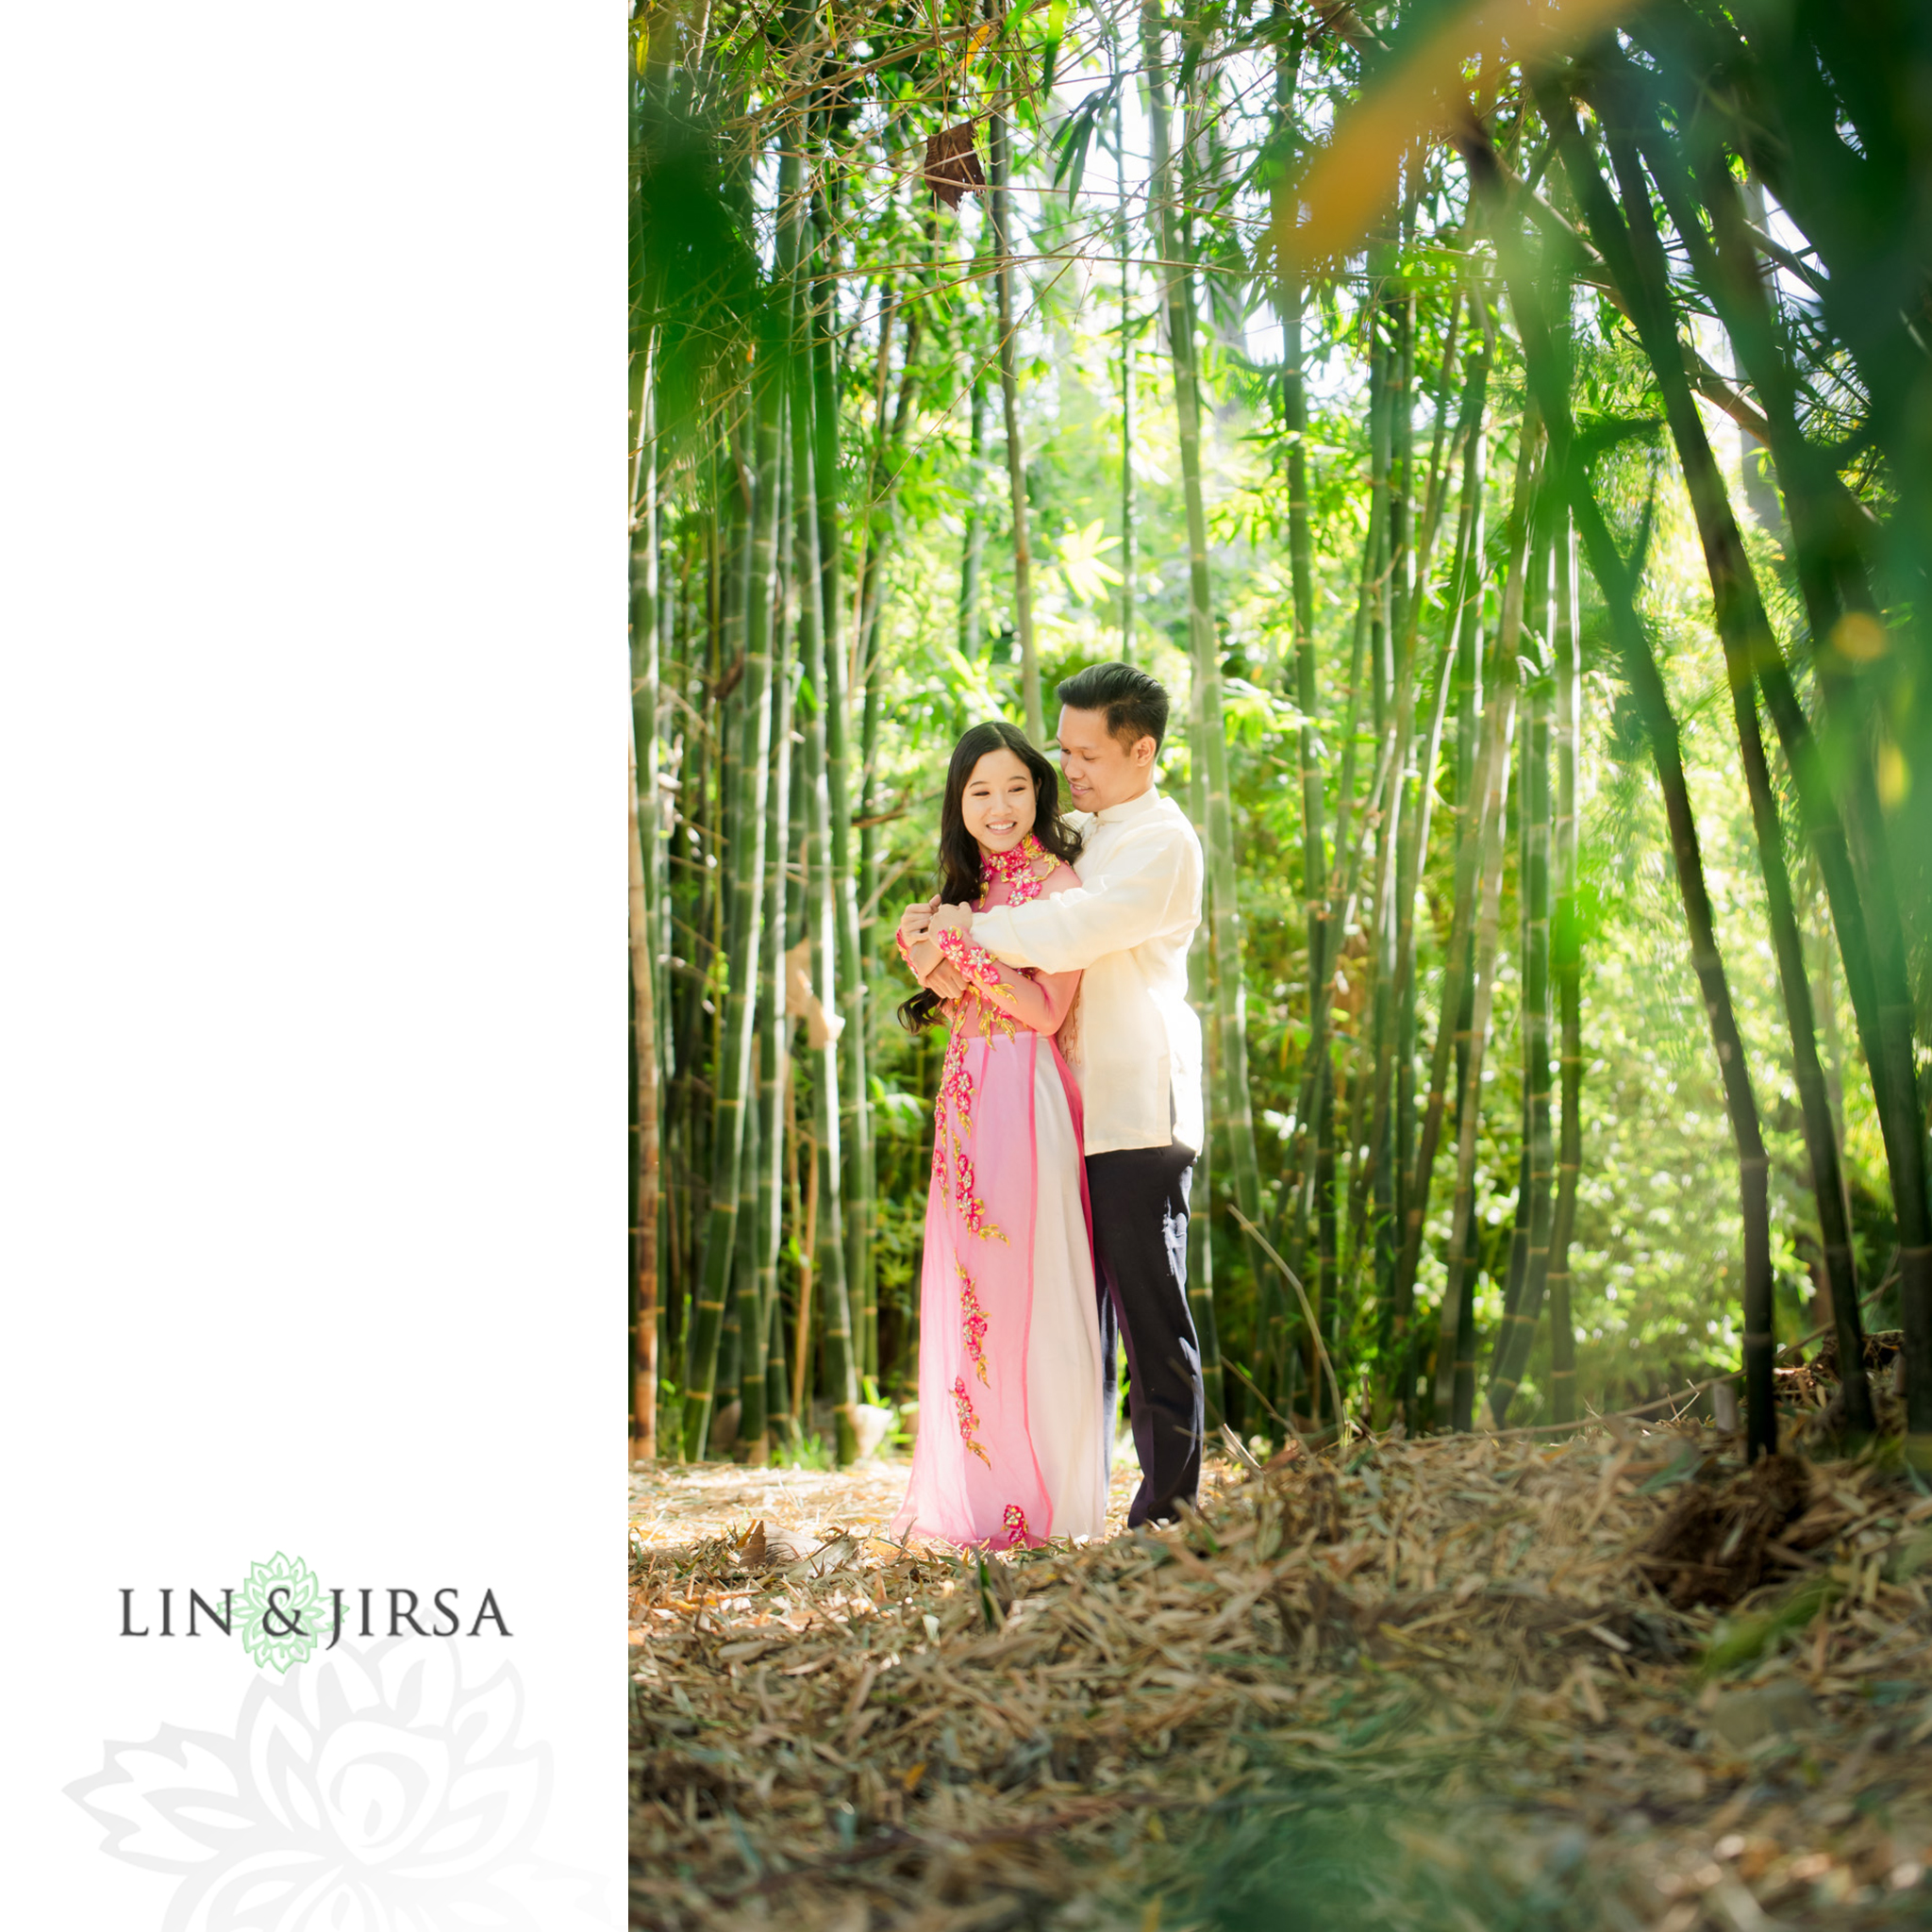 zjg Los Angeles Arboretum Spring Engagement Photography